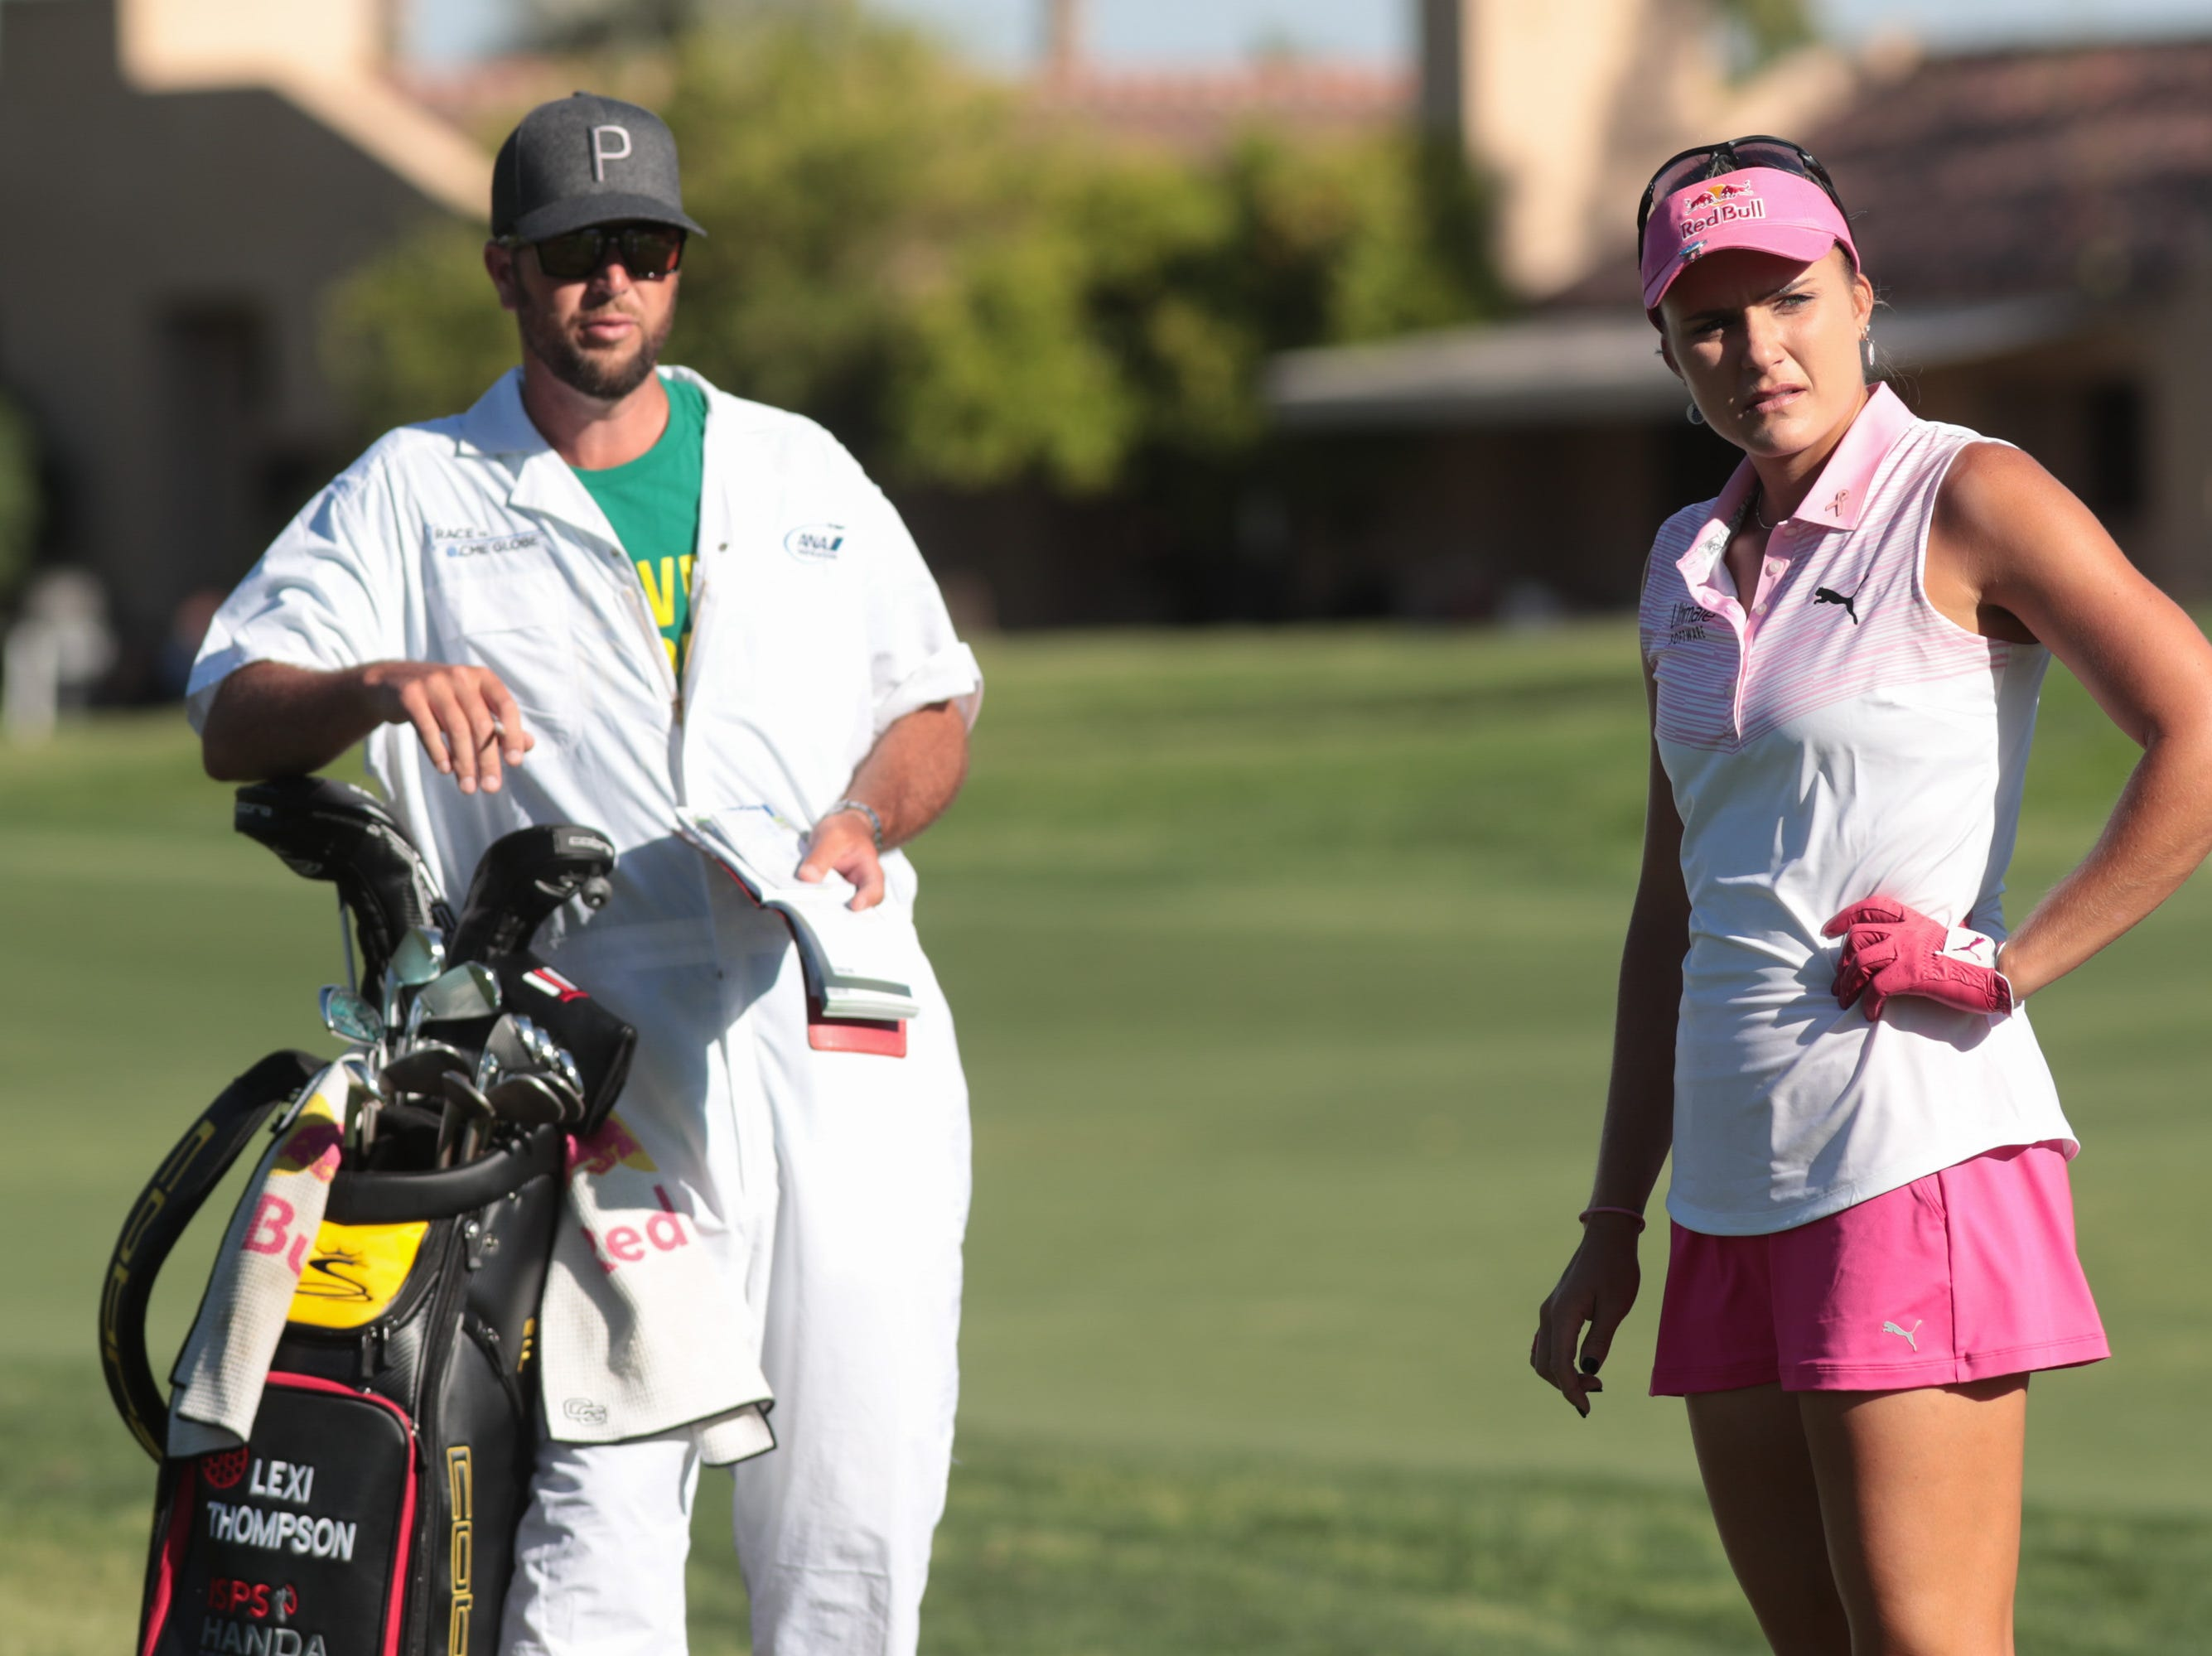 Lexi Thompson prepares for a shot on the 16th hole of the Dinah Shore Course at the ANA Inspiration, Rancho Mirage, Calif., April 6, 2019.